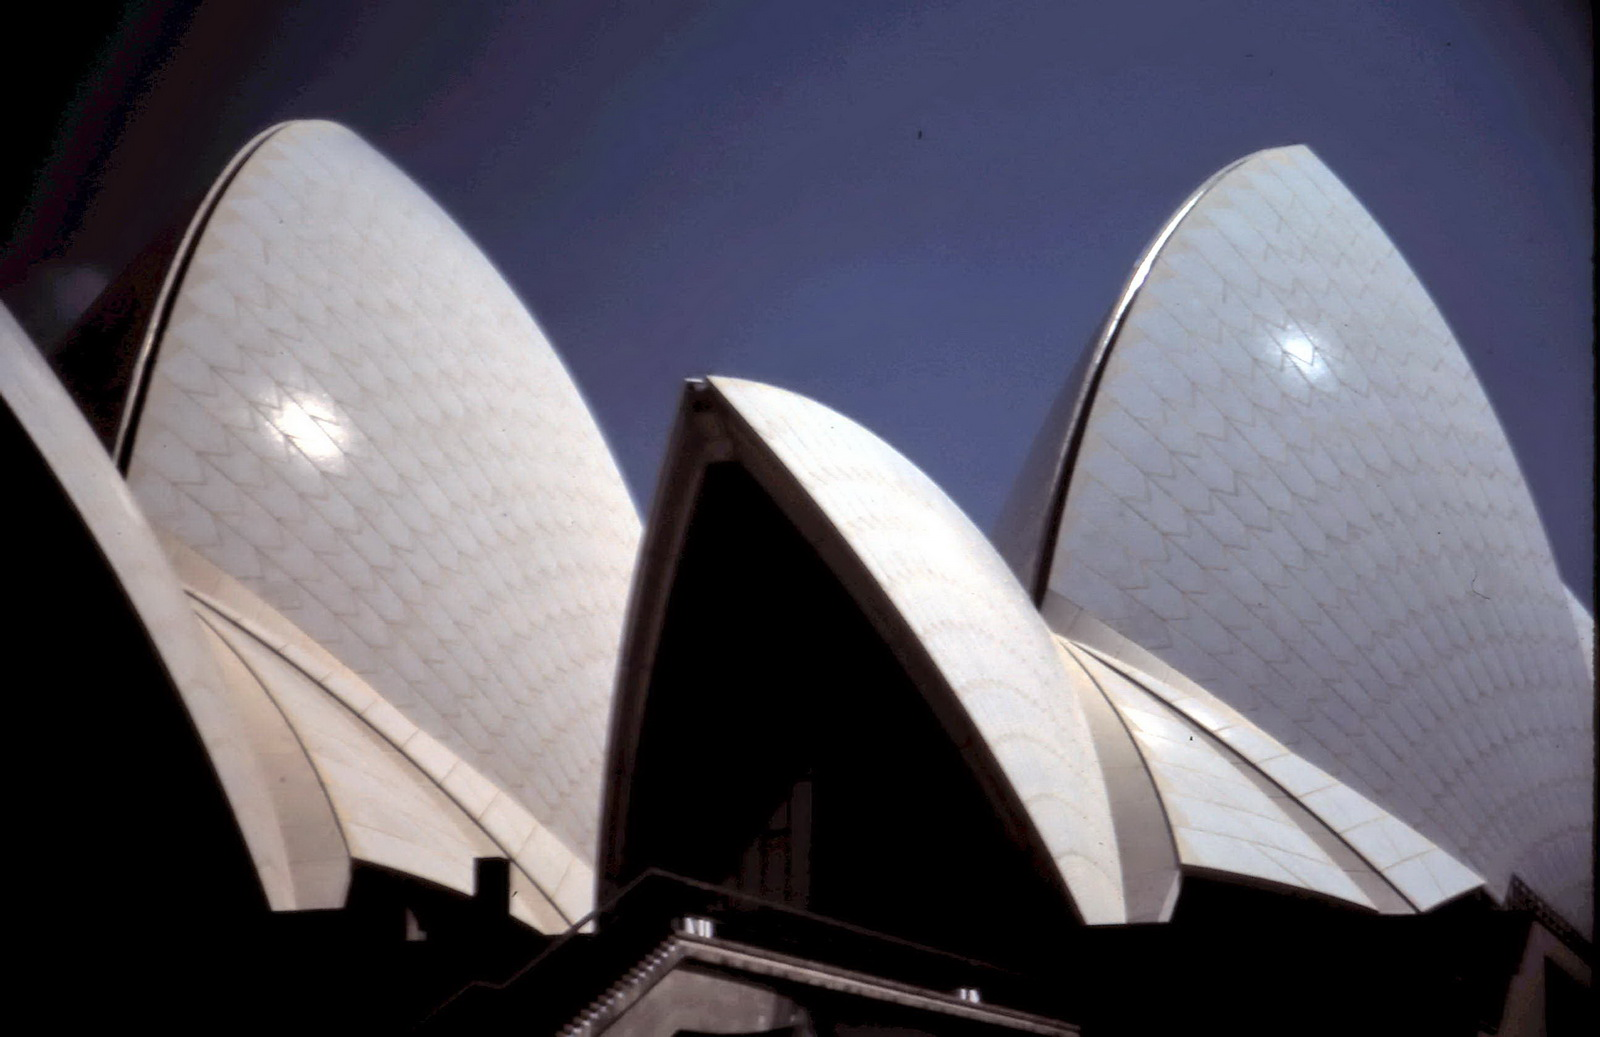 Sydney Opera House 1975, image by Gregory Melle, Flickr